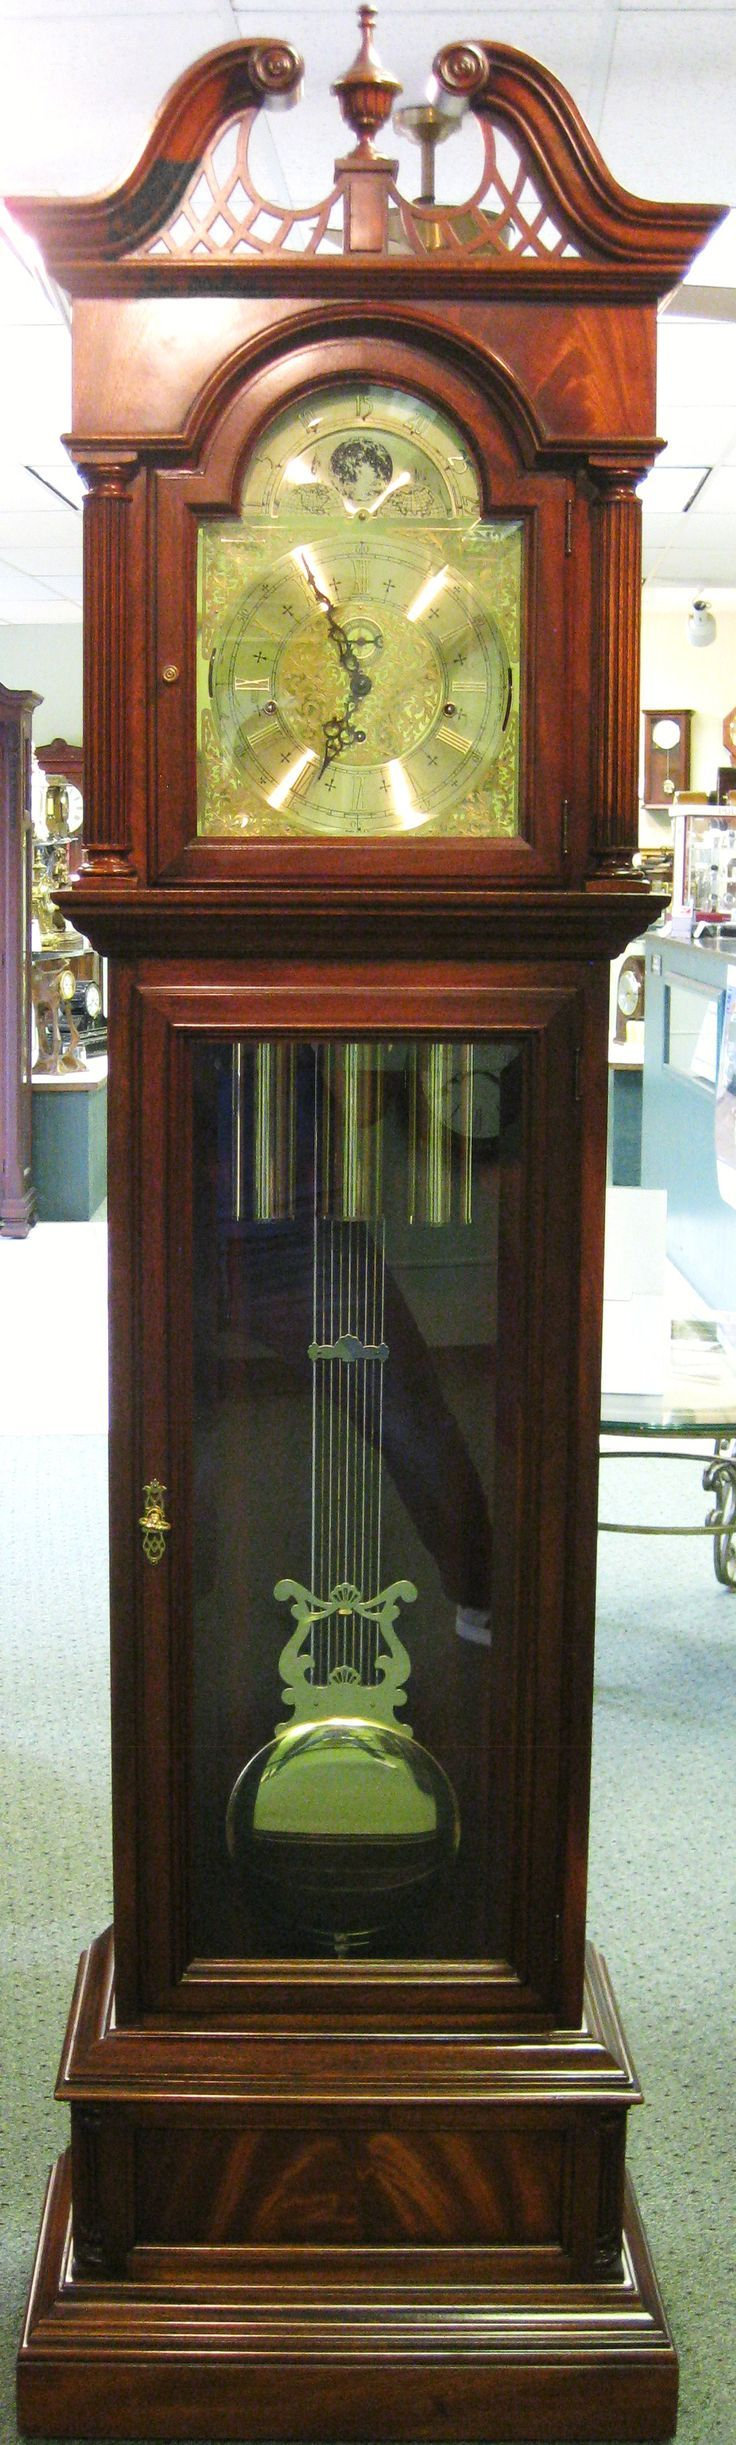 Best 25 grandfather clock repair ideas on pinterest antique grandfather clocks wall mantel antique clocks clock repair by mcguires clocks amipublicfo Images